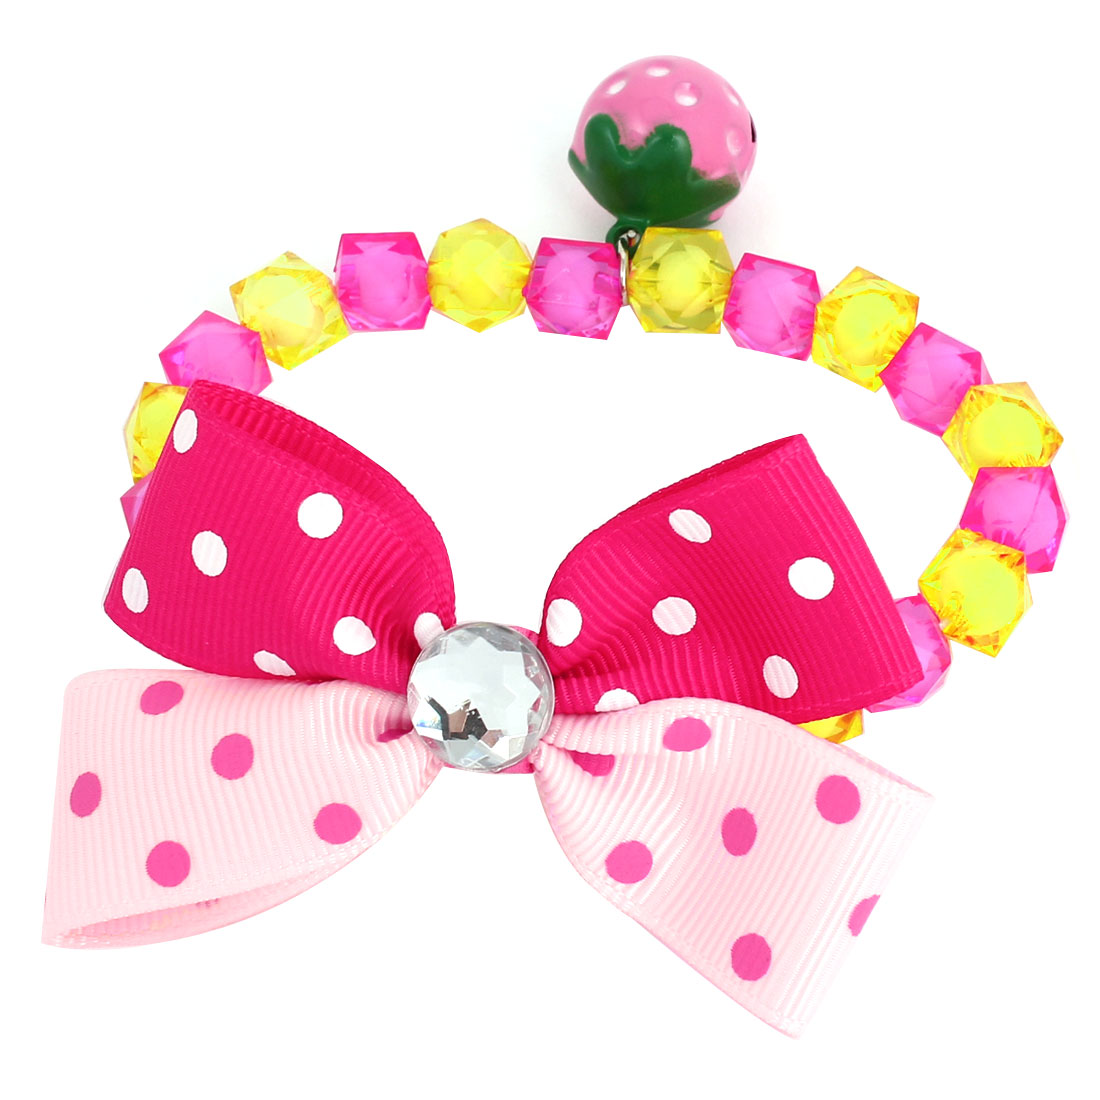 Metal Bell Pendant Bowtie Accent Pet Dog Plastic Beads Collar Necklace Fuchsia Yellow XS